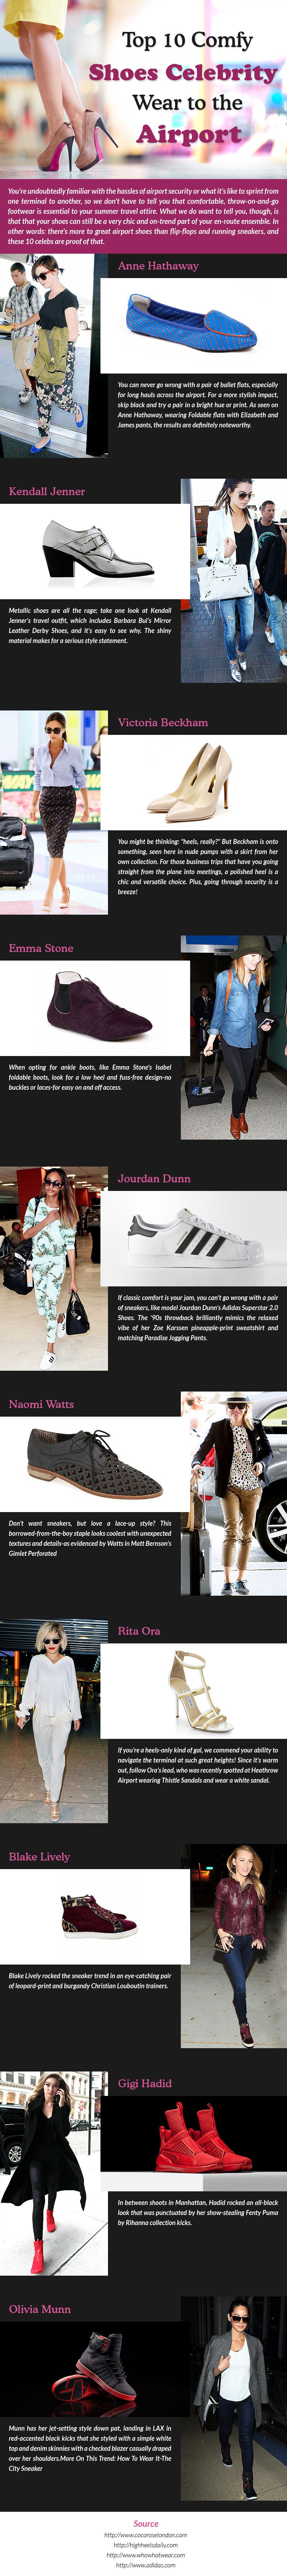 Top-10-Comfy-Shoes-Celebrity-Wear-to-The-Airport